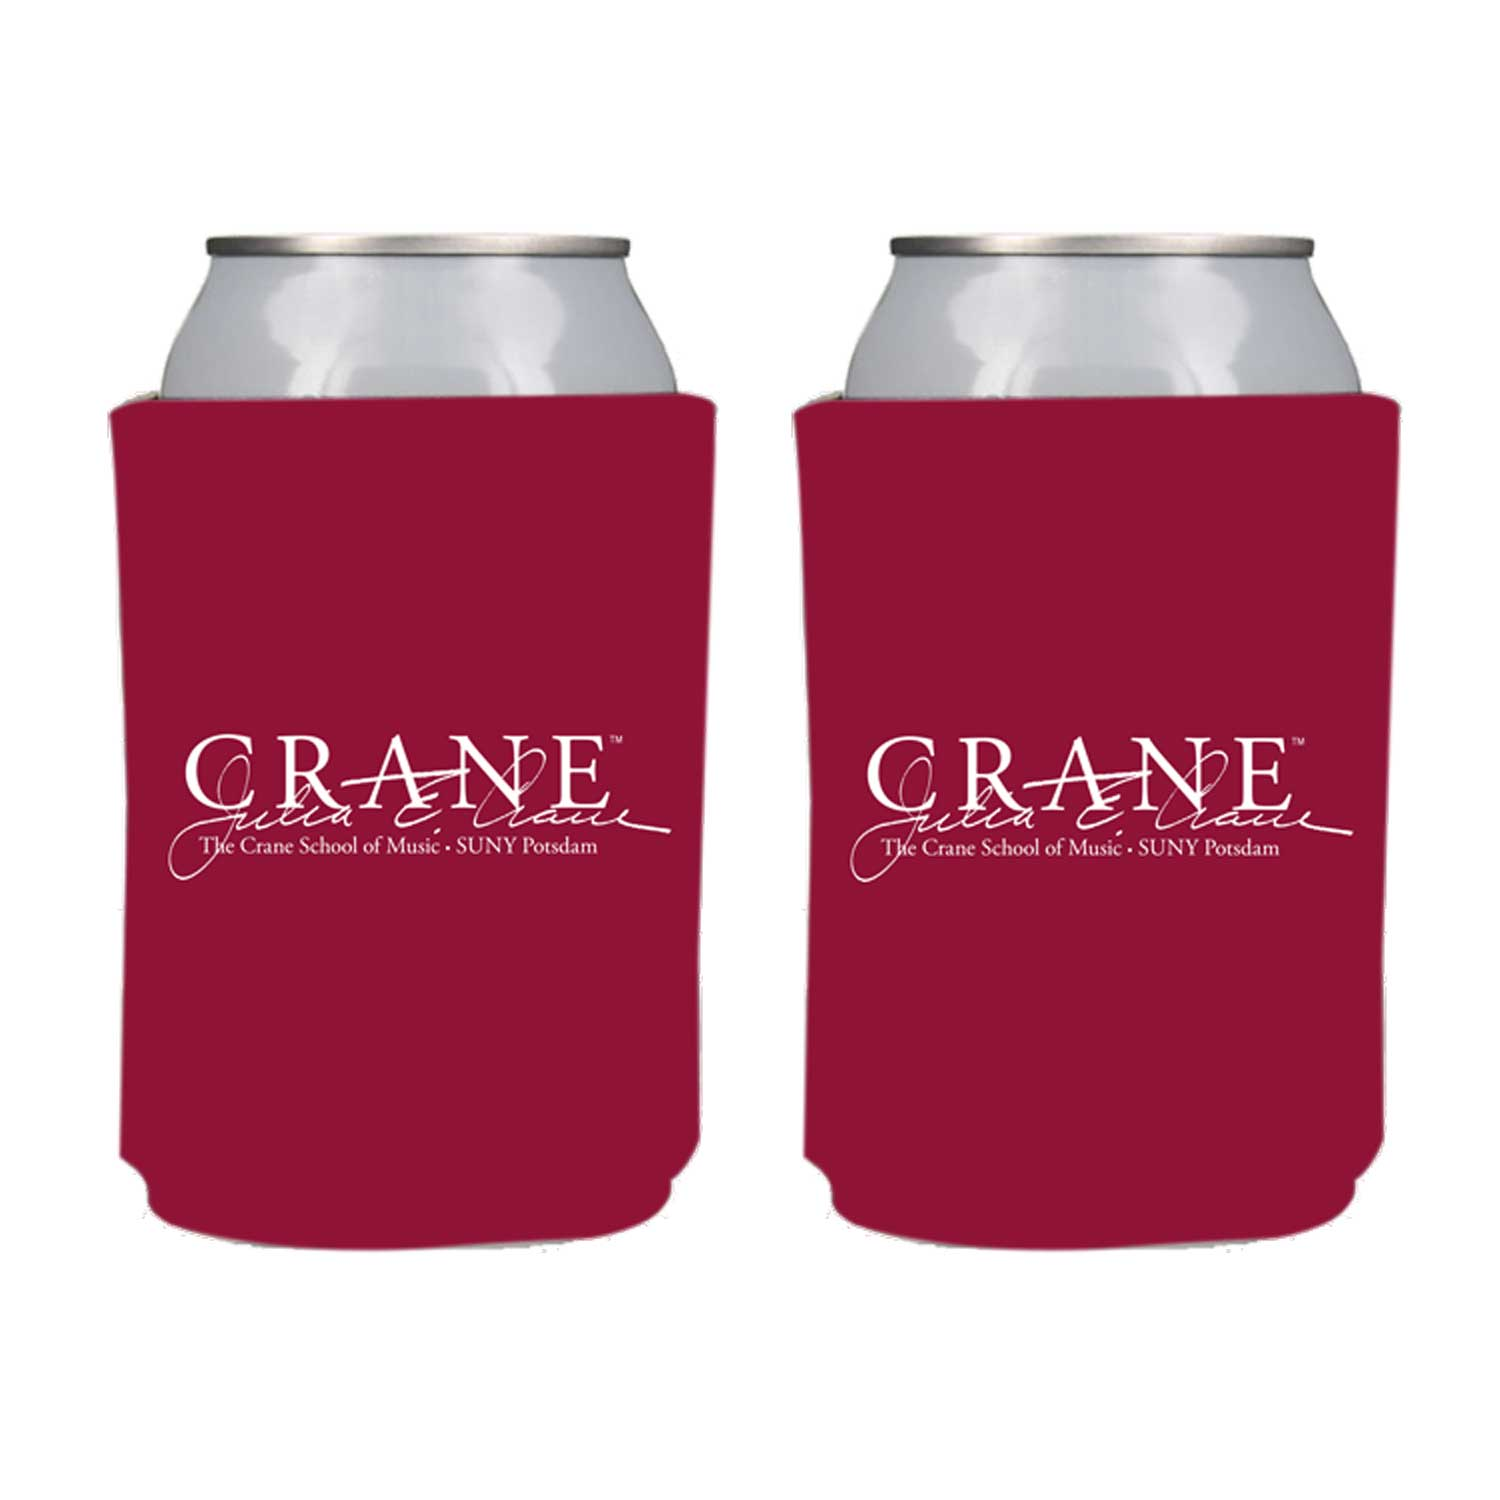 Image For CRANE CAN HOLDER